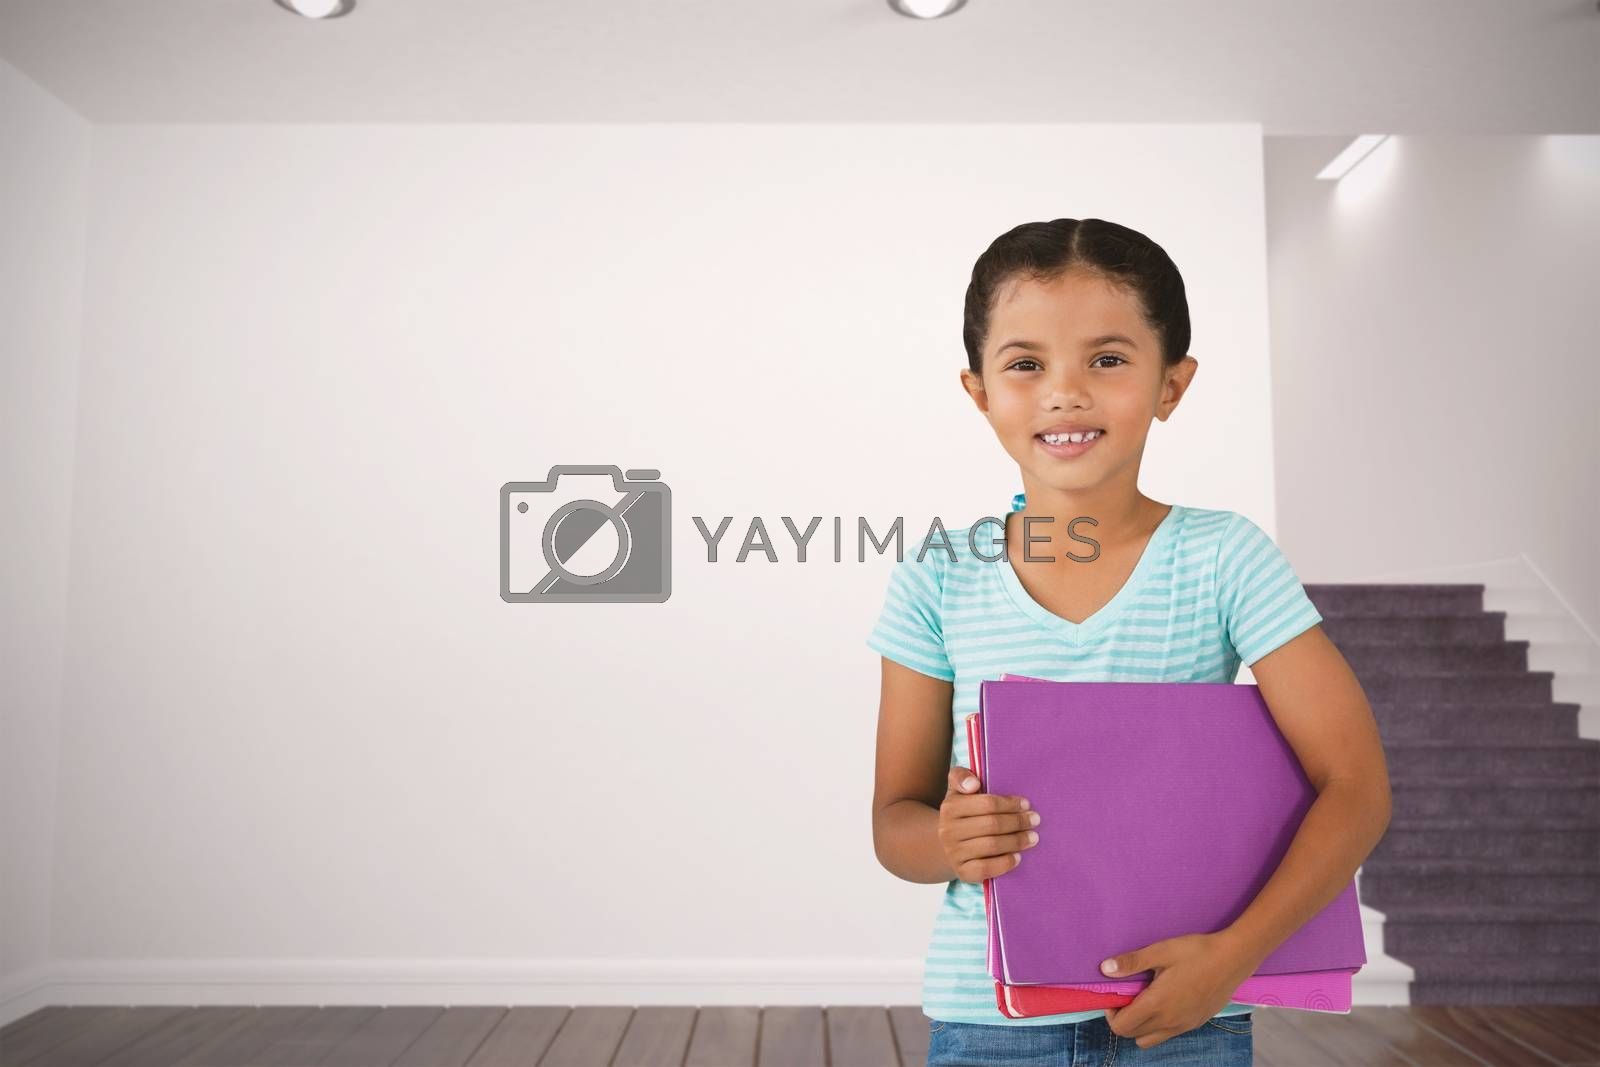 Composite image of portrait of smiling girl holding files by Wavebreakmedia